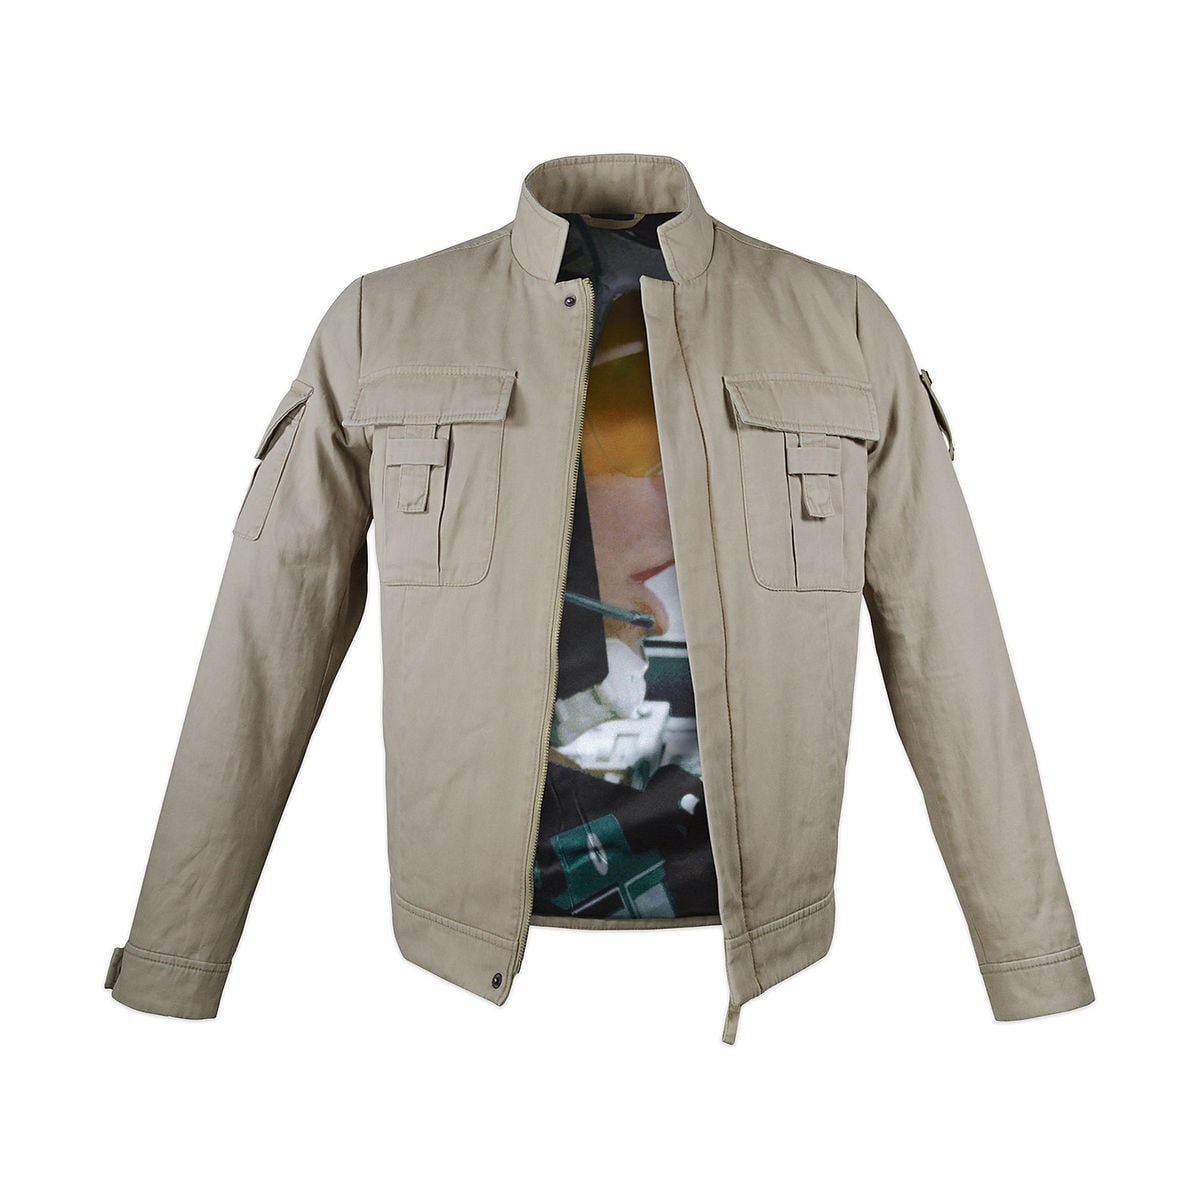 Product Image of Luke Skywalker Jacket for Adults by Musterbrand - Star  Wars - Limited Edition f5e00db46